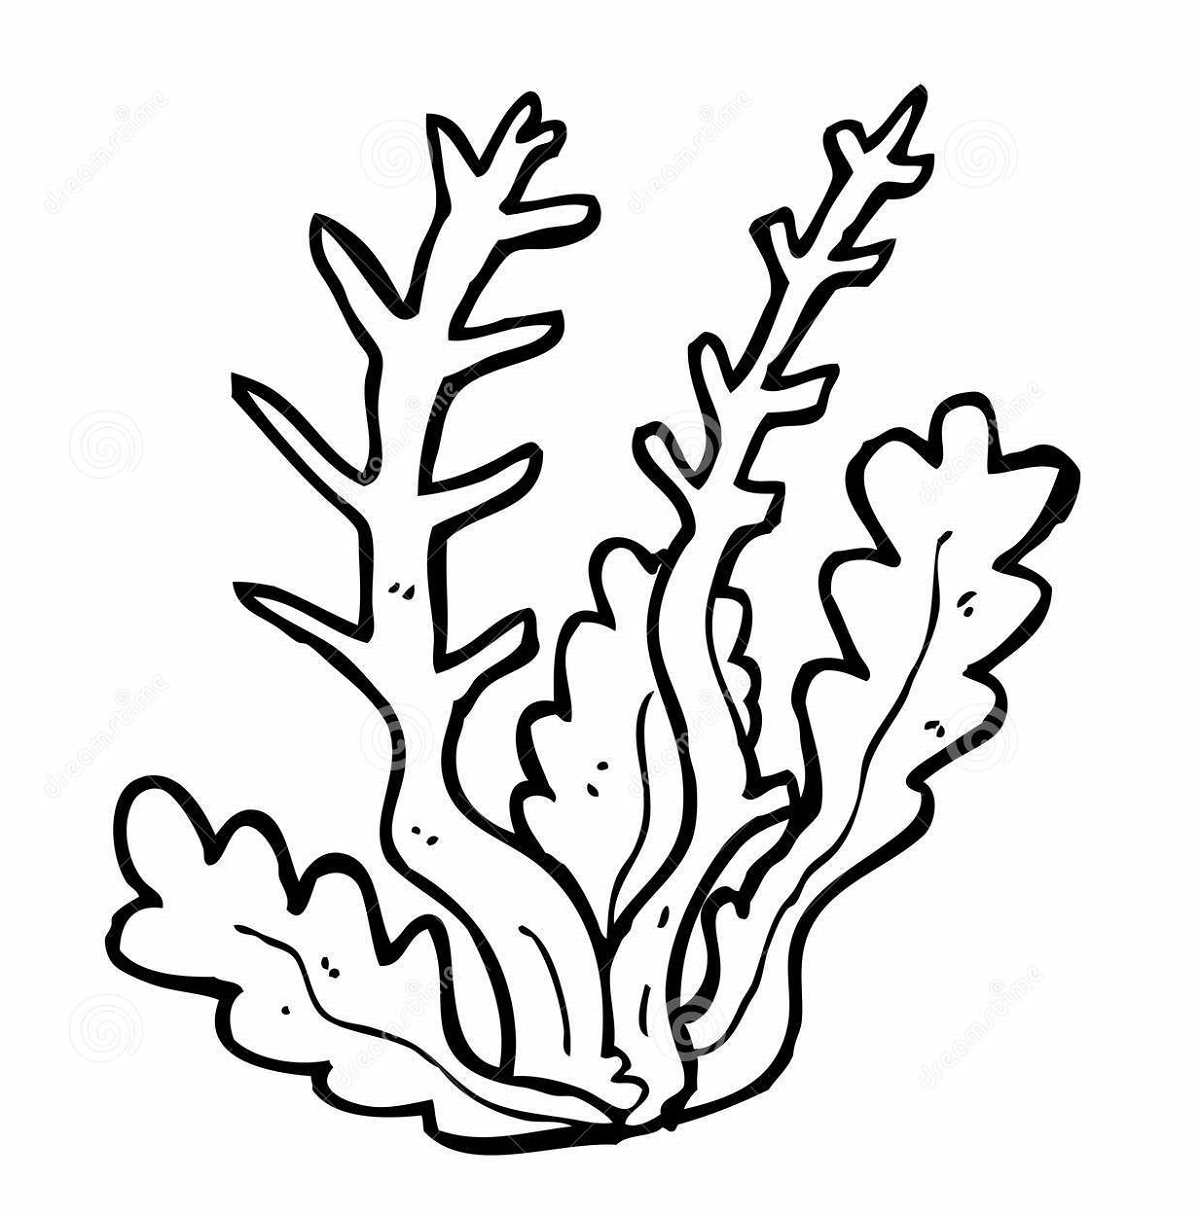 Seaweed coloring pages one